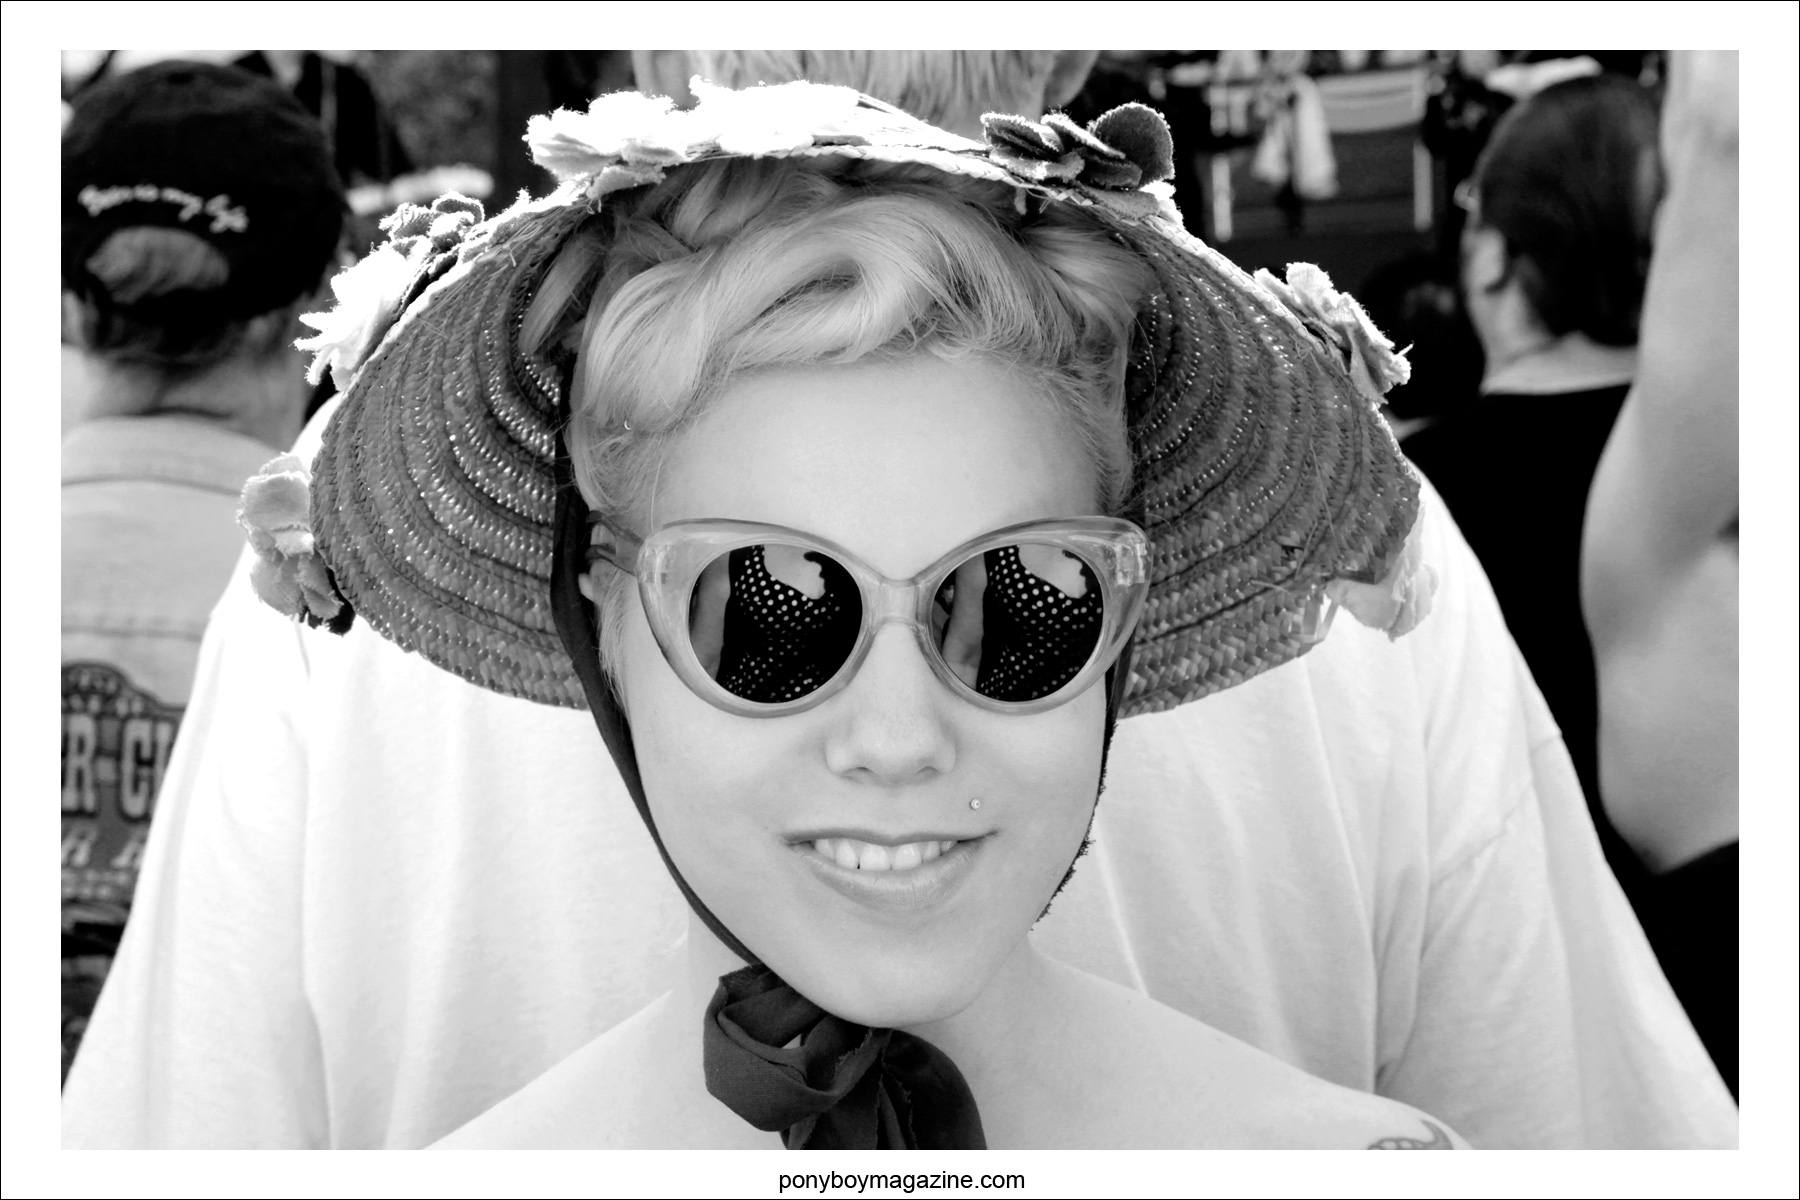 A 1950's vintage hat photographed at Tom Ingram's Viva Las Vegas rockabilly car show by Alexander Thompson for Ponyboy Magazine.